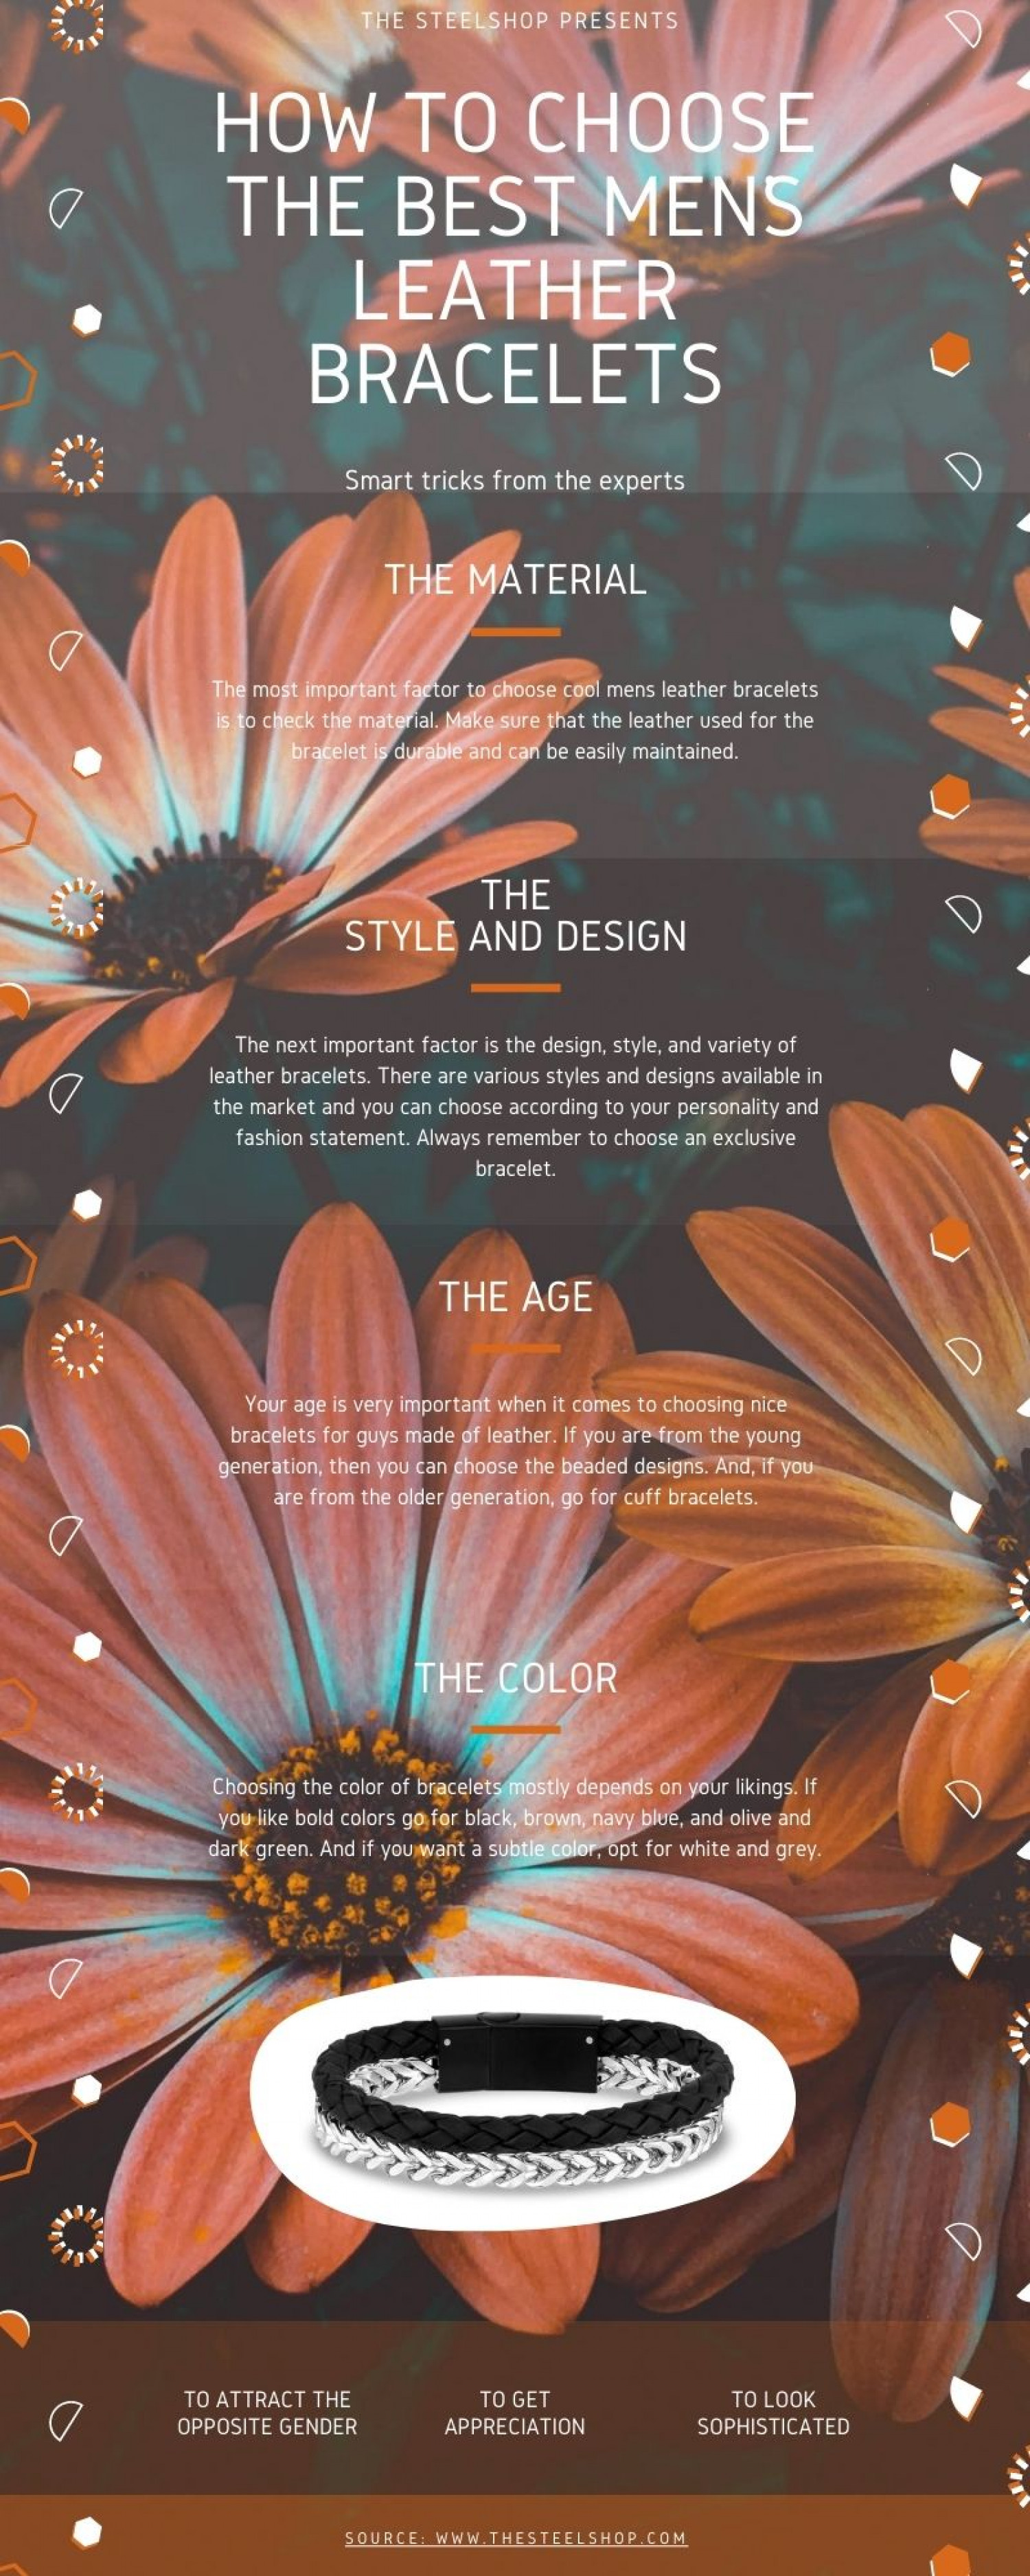 How to choose the Best Men's Leather Bracelets? Infographic